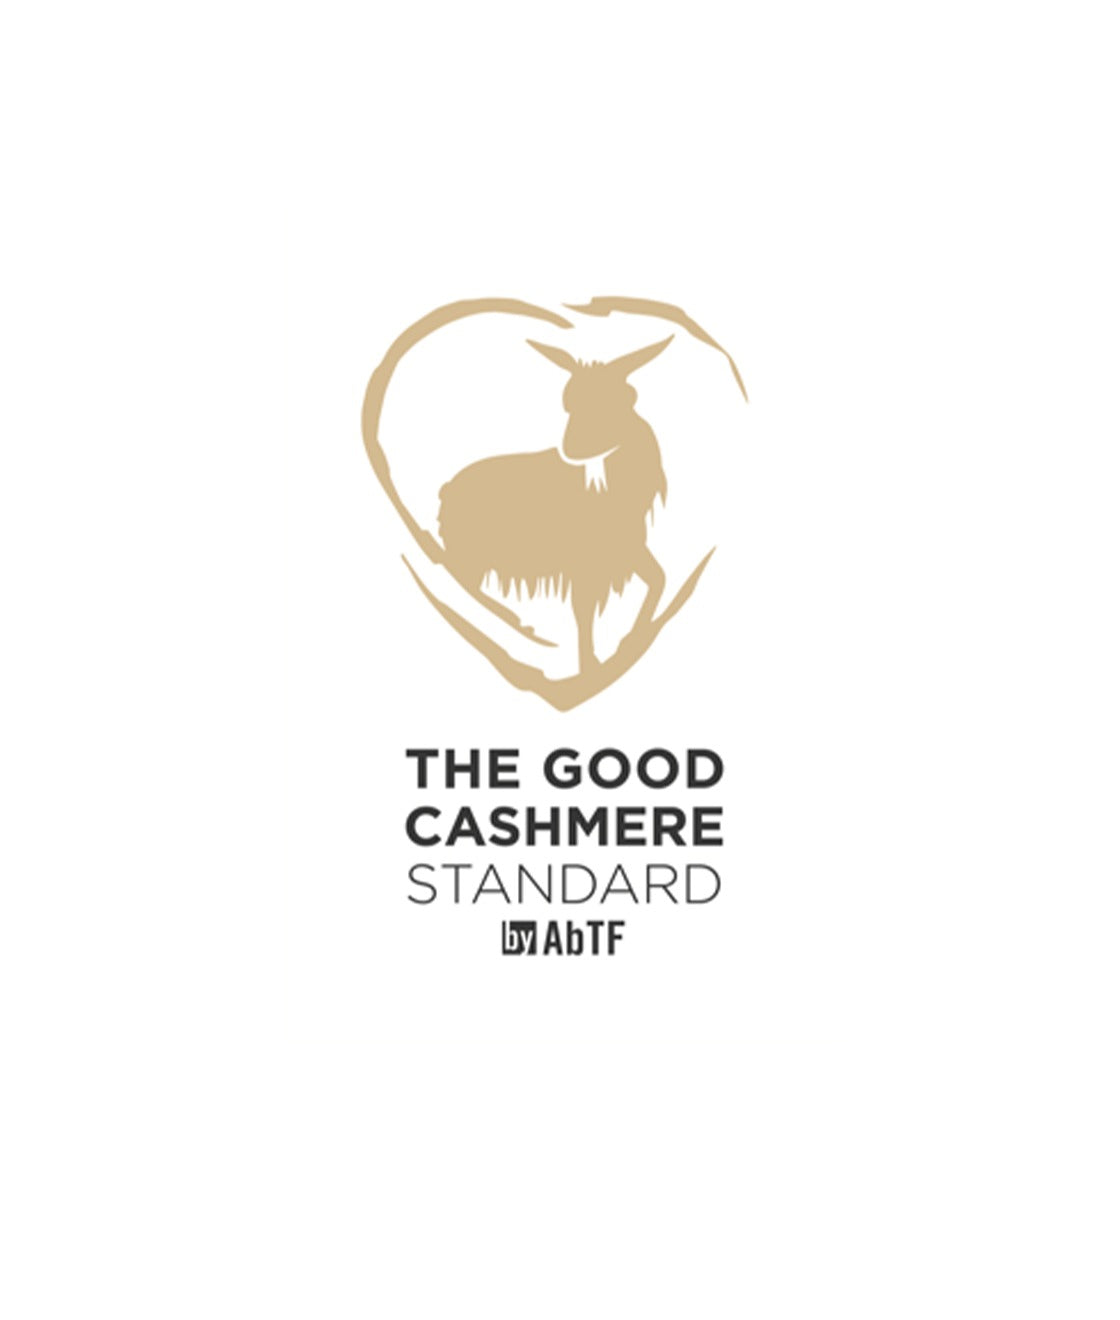 THE GOOD CASHMERE STANDARD®